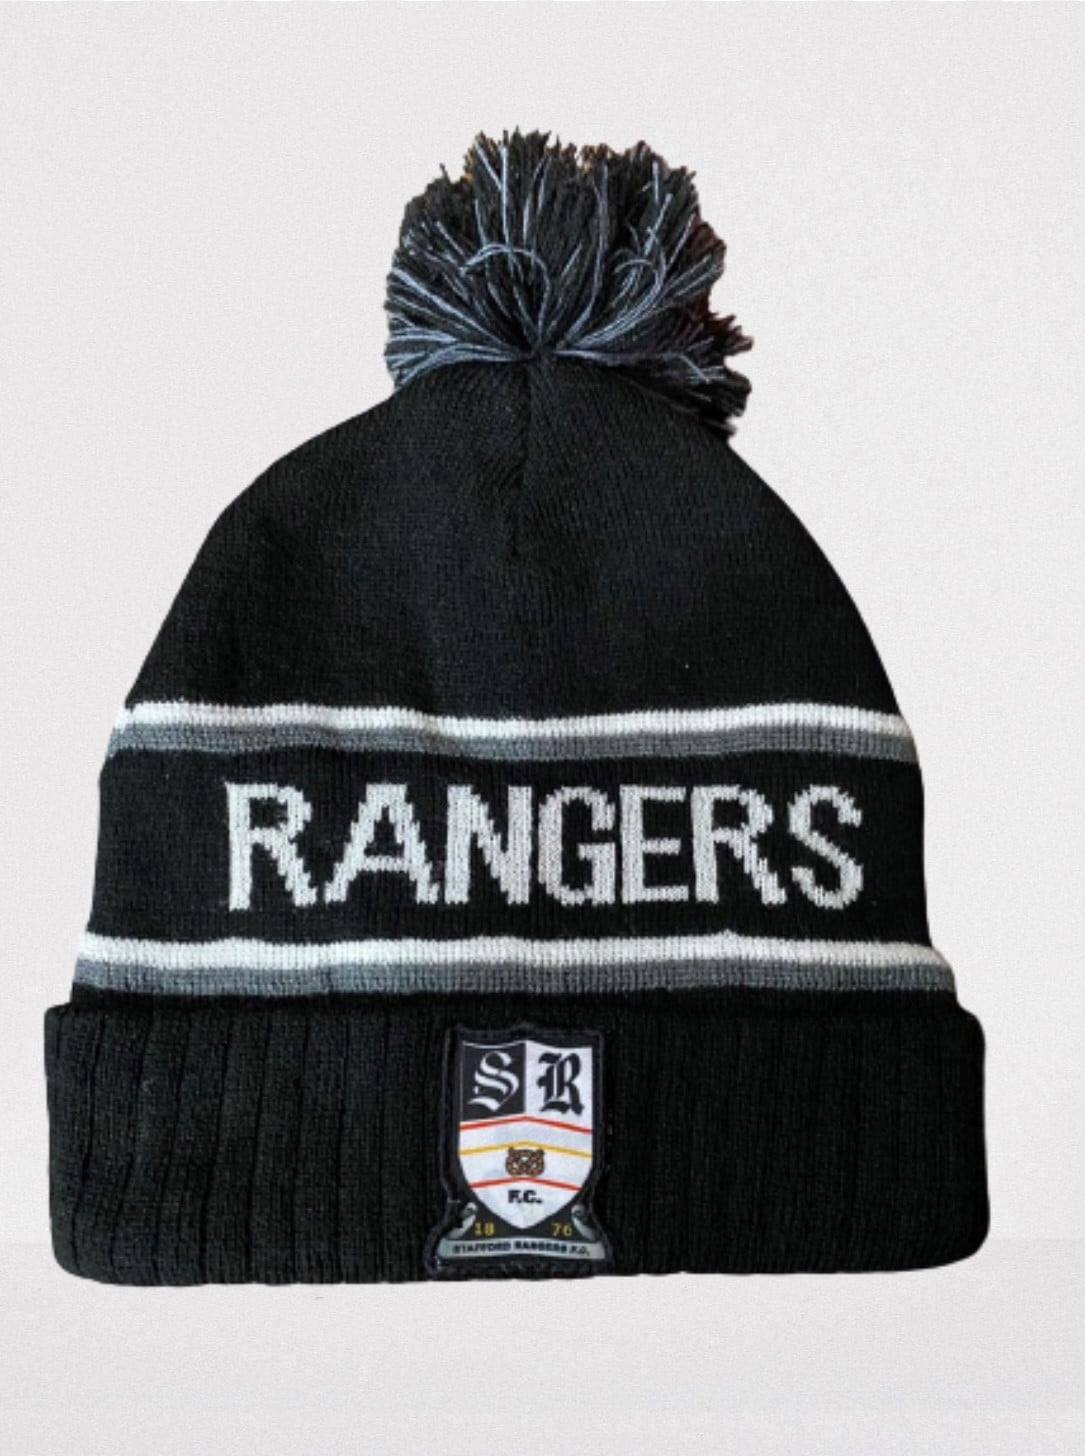 Protected: Stafford Rangers Bobble Hat